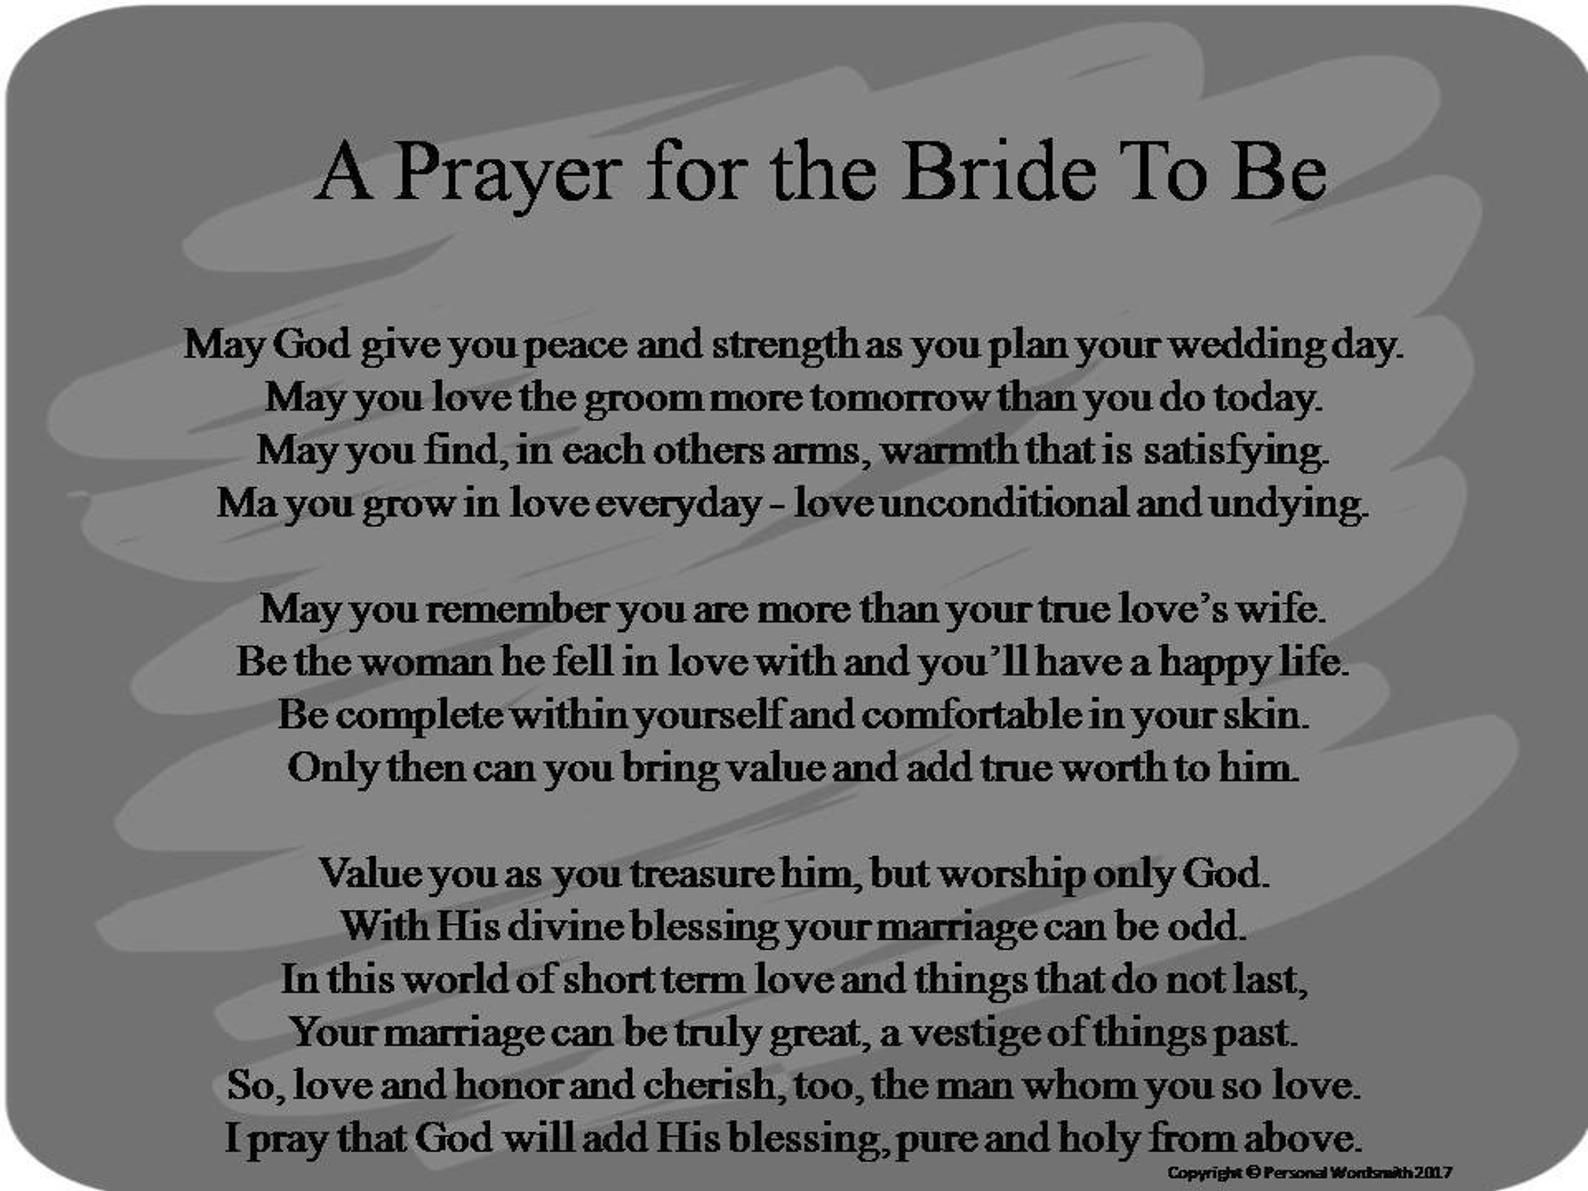 Printable Prayer For The Bride To Be Prayer For Bride Download Bride To Be Poetry Print Marriage Prayer Art Digital Download Prayer In 2020 Printable Prayers Funny Wedding Speeches Bride